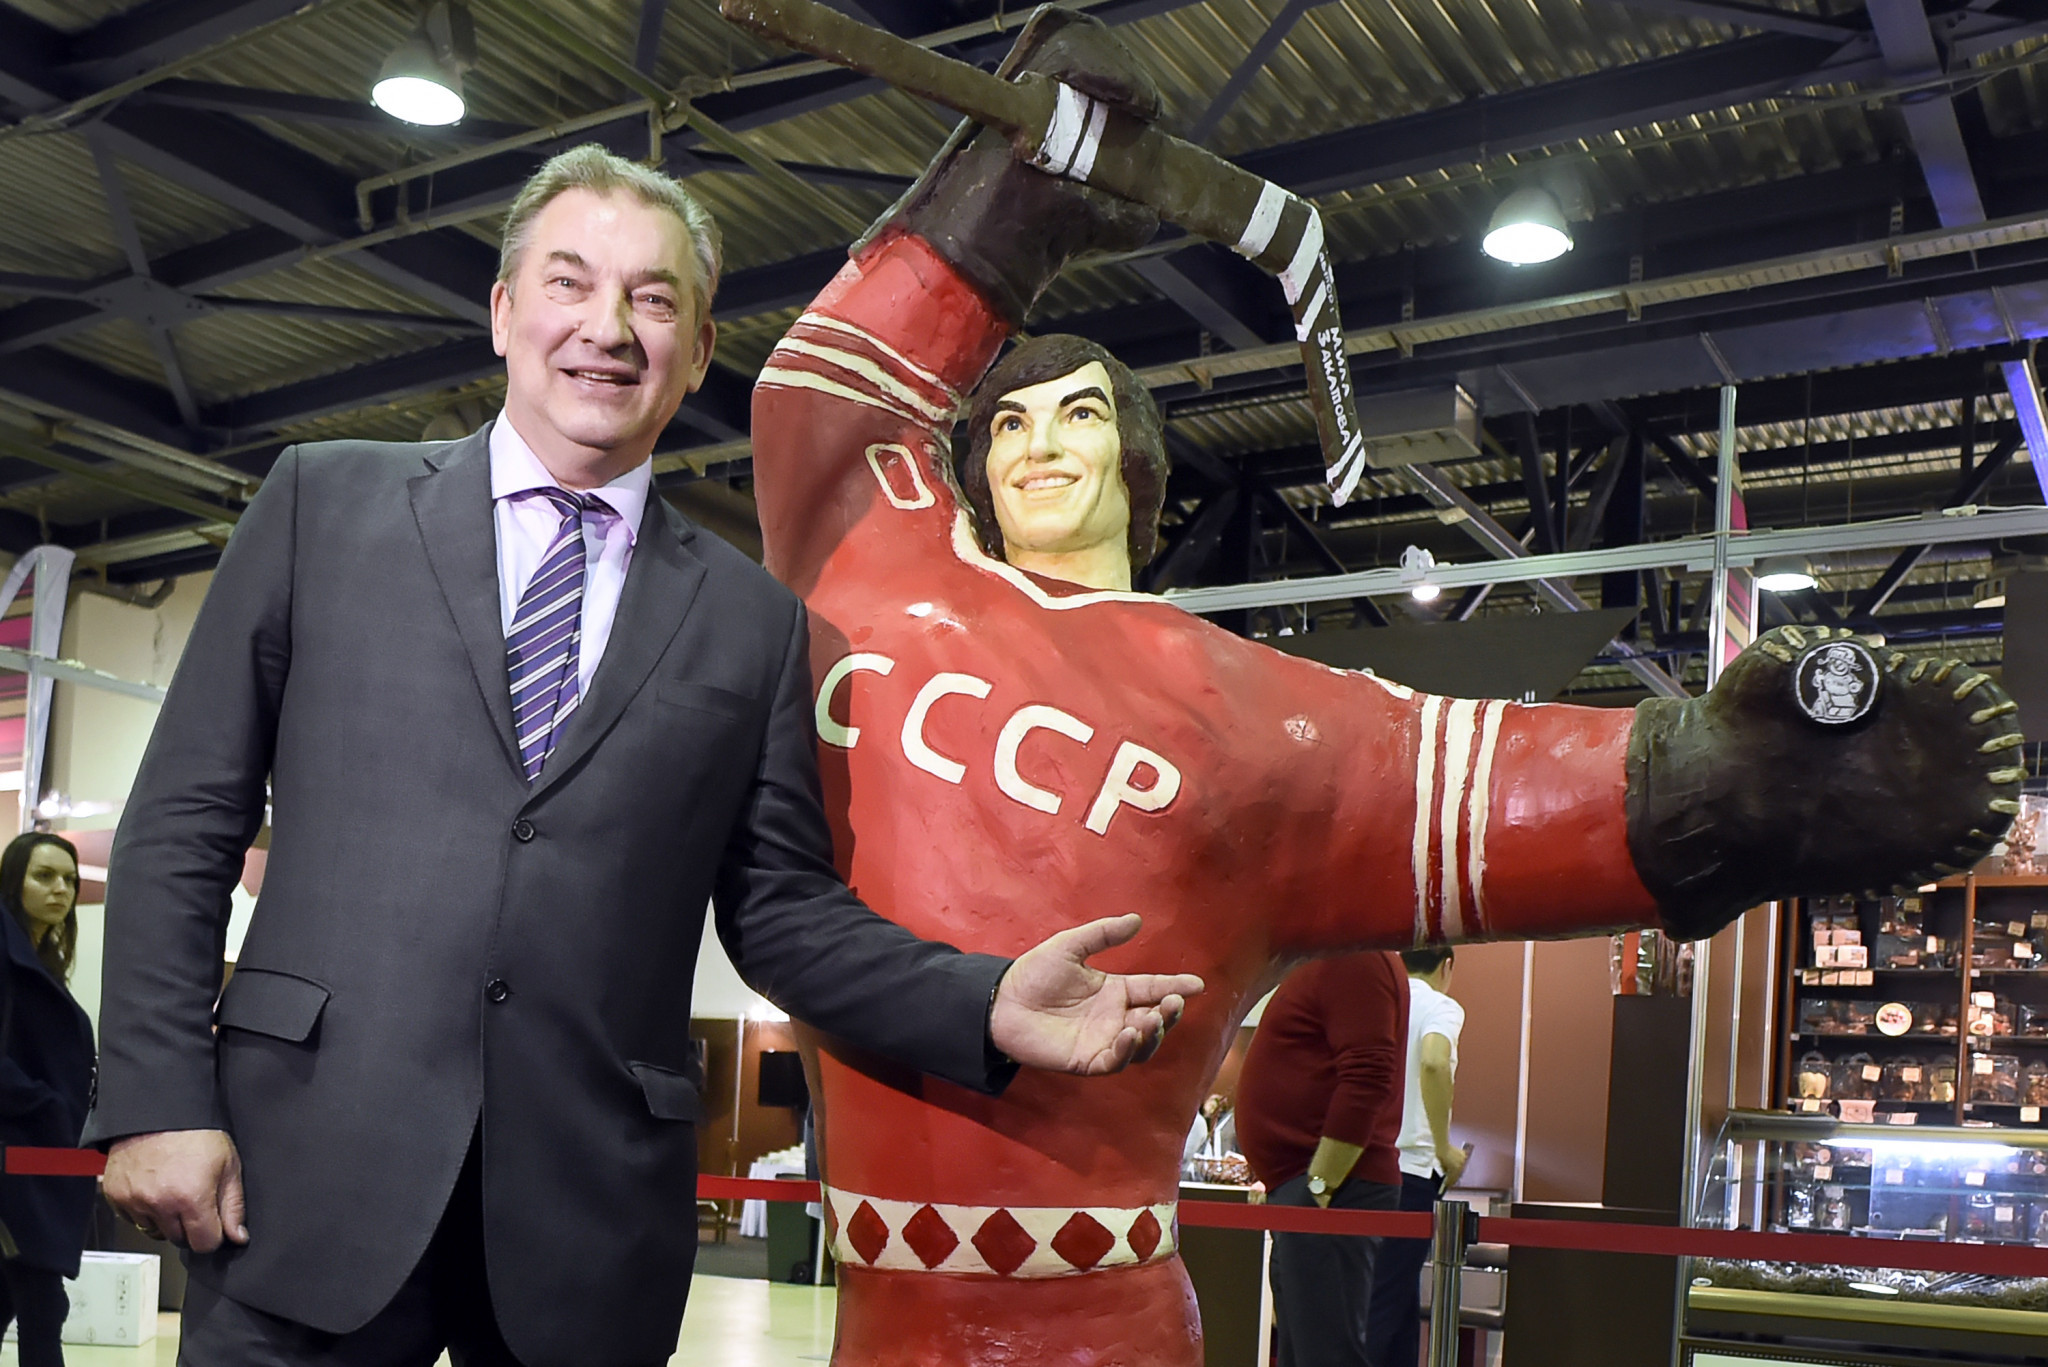 Tretiak vows to increase participation as wins unanimous victory in Russian Ice Hockey Federation election